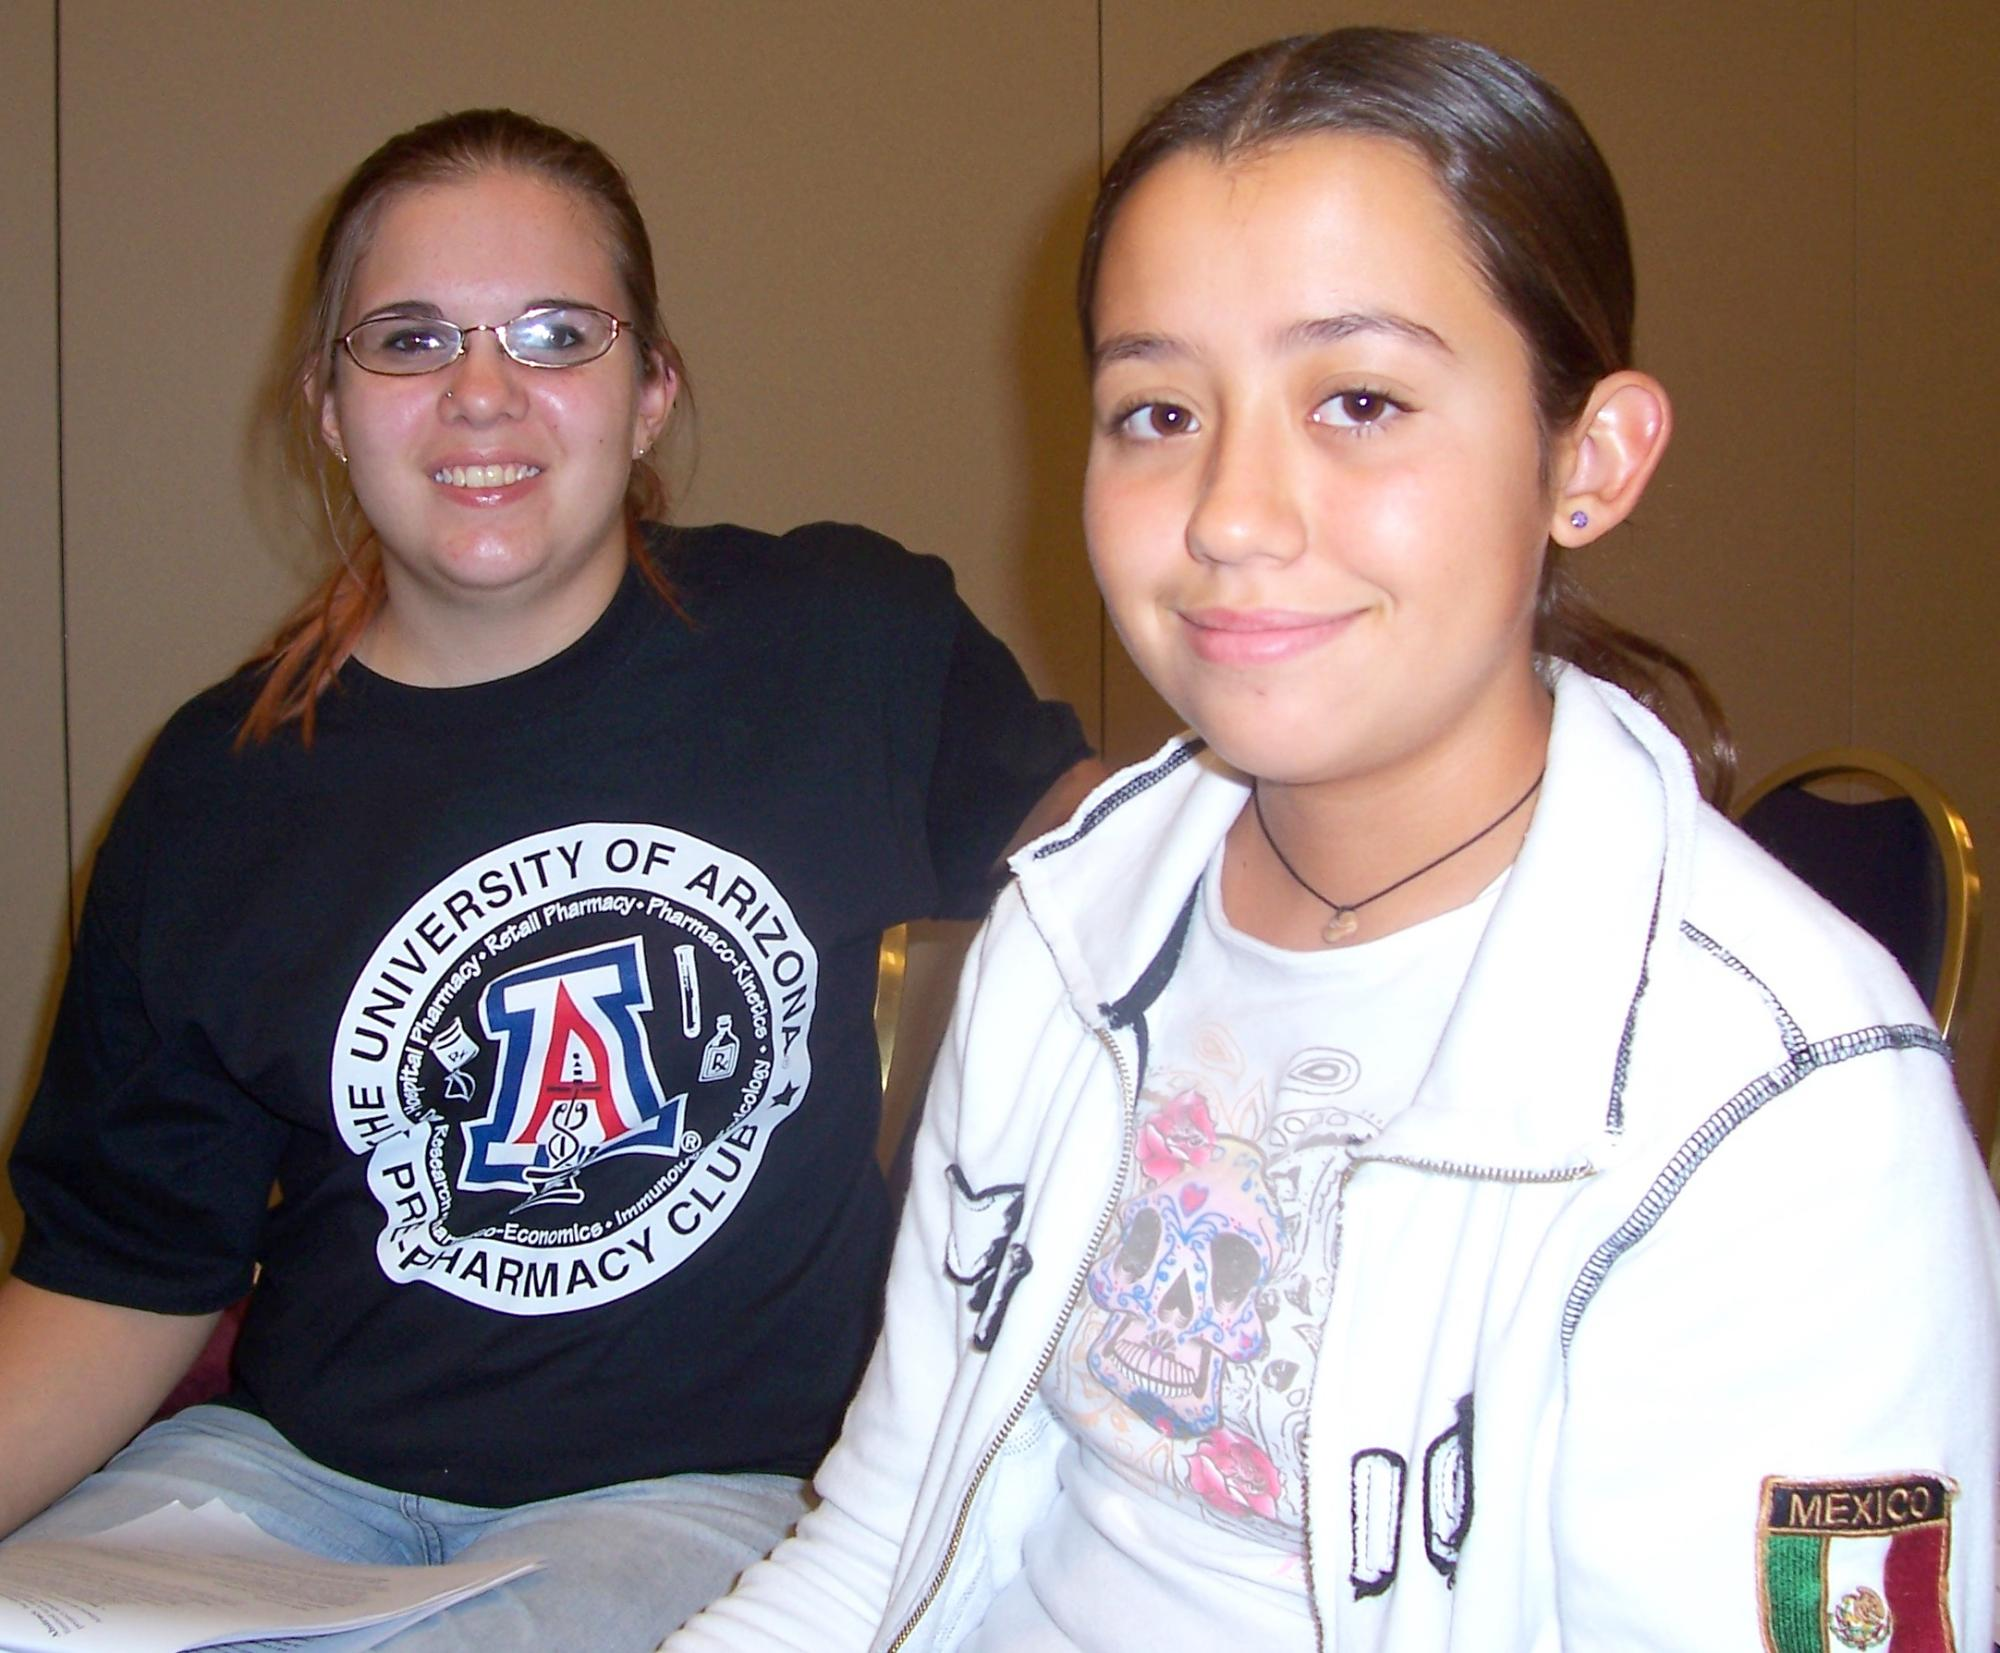 Though new to one another, UA student Cassandra Anderson and middle school student Isabella Gonzalez-Potter immediately began talking about school and science after meeting Saturday afternoon.